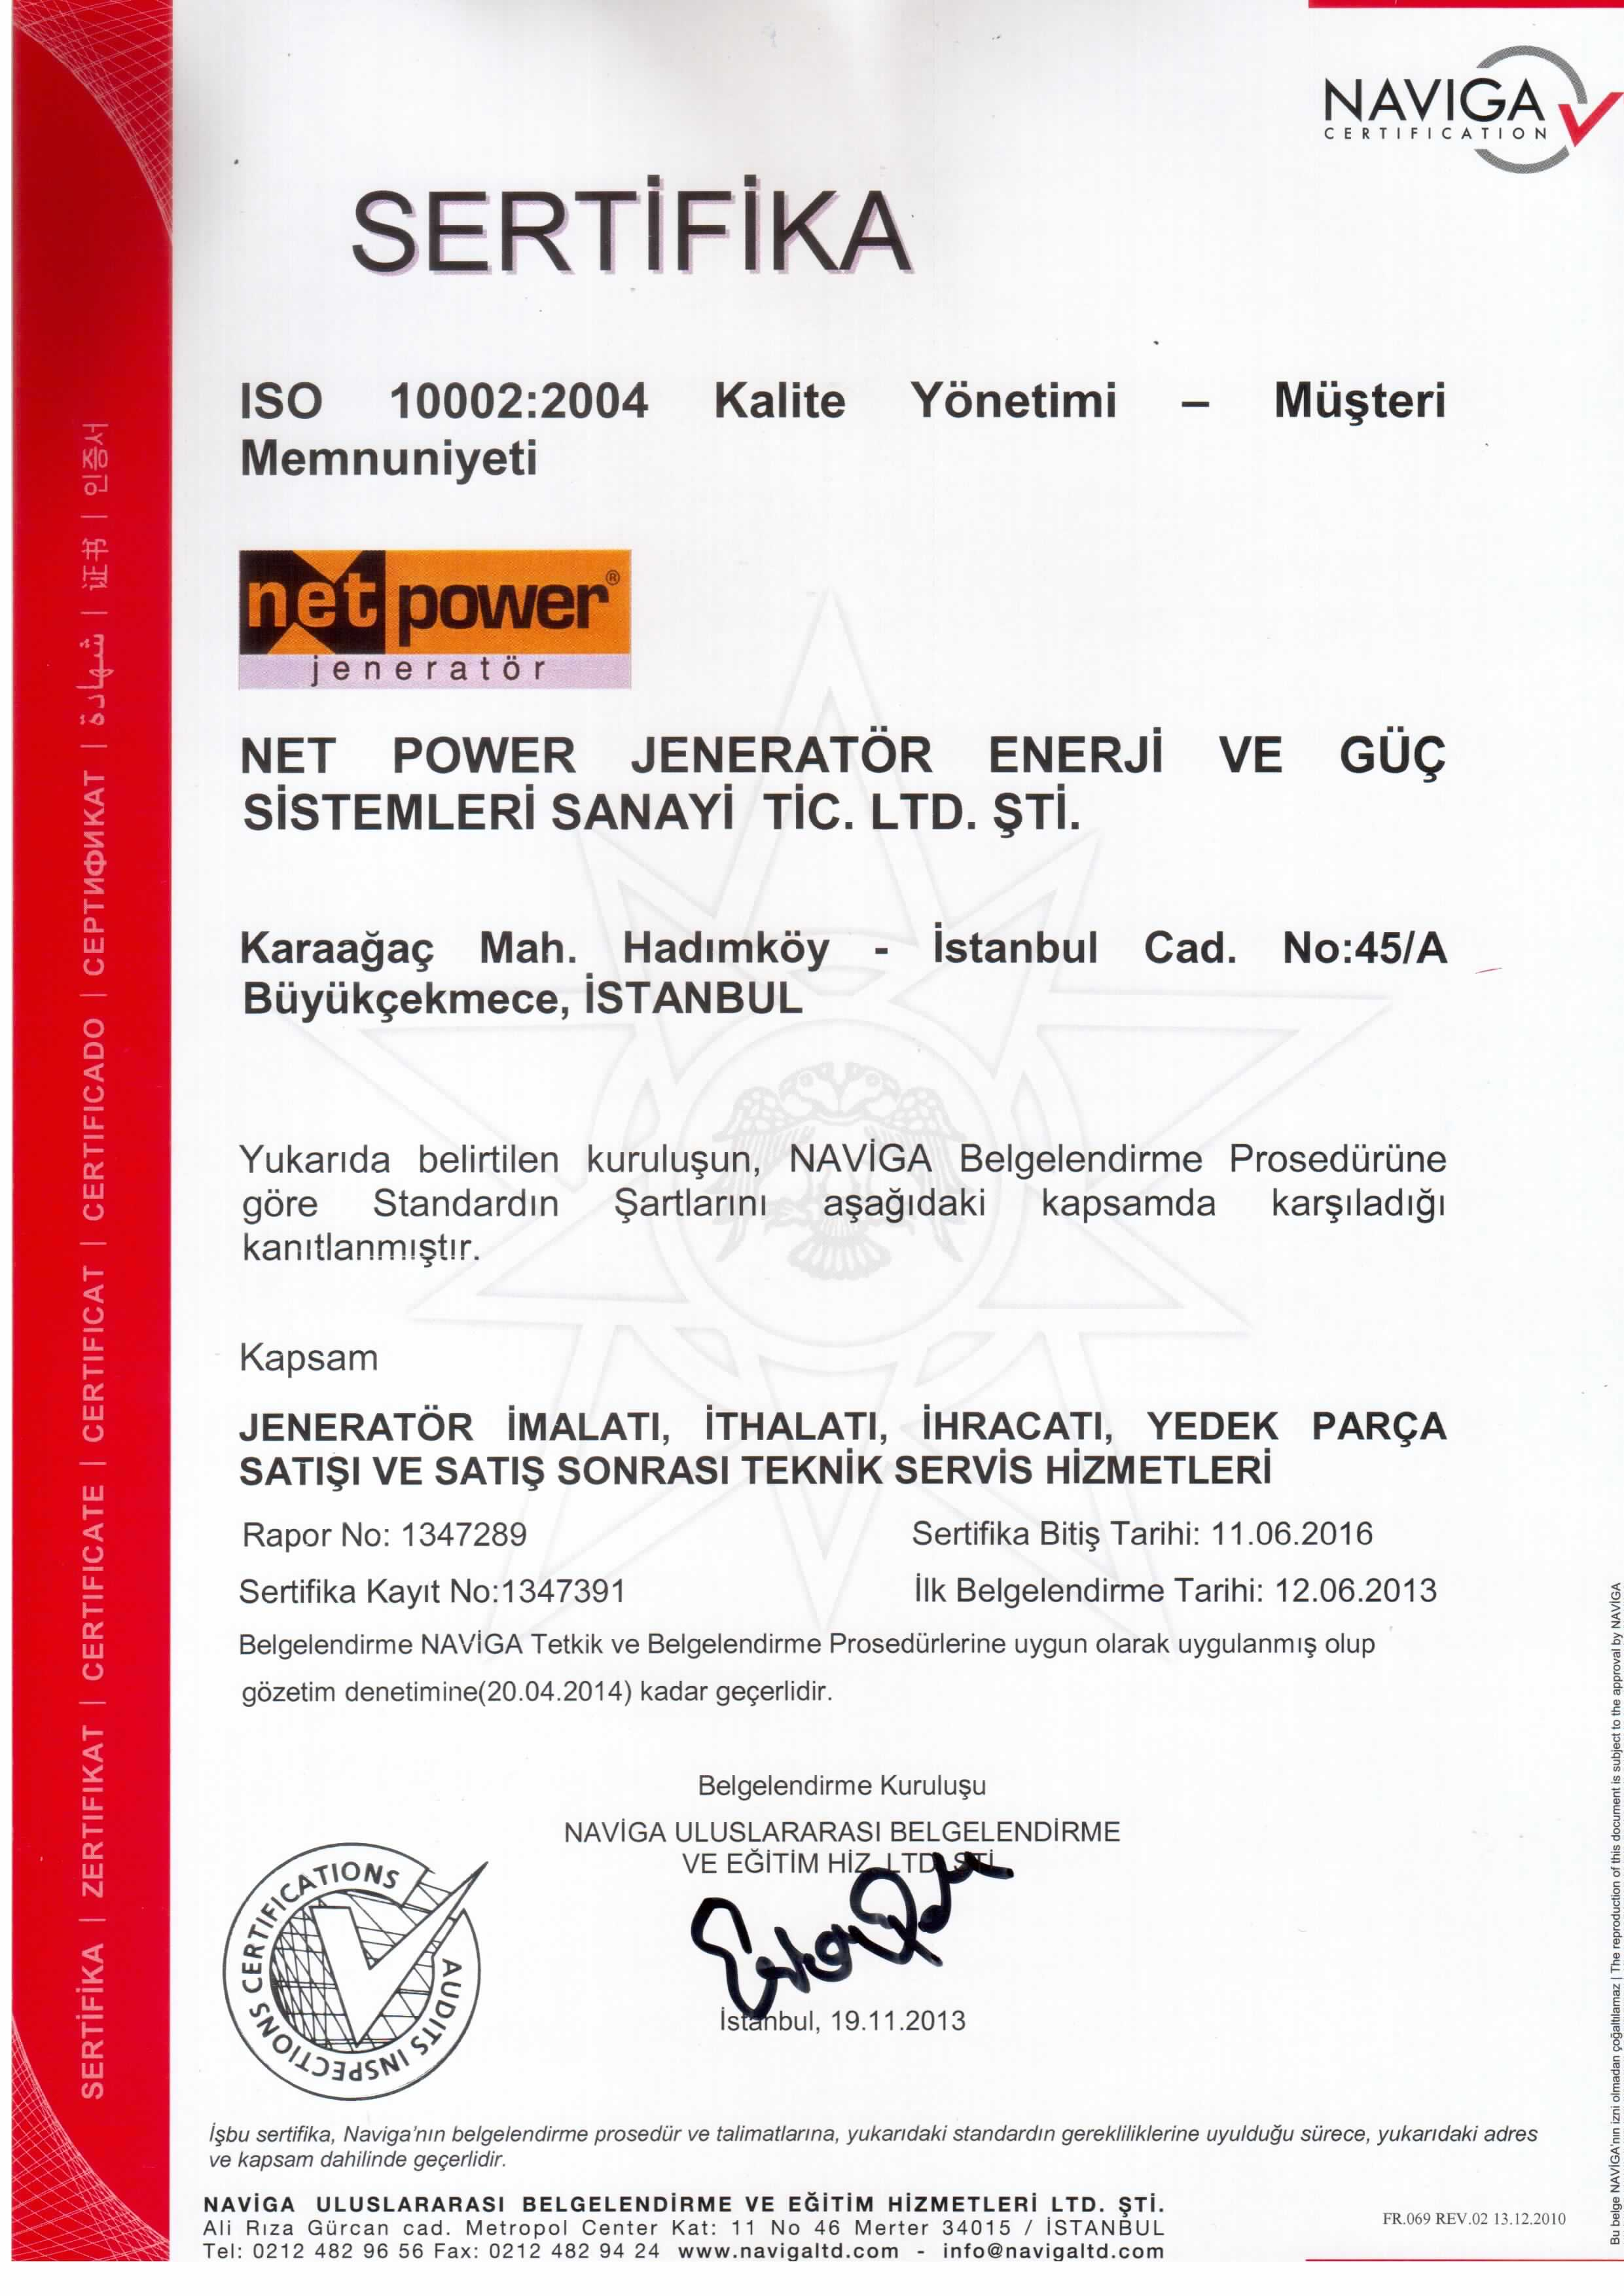 ISO 1002